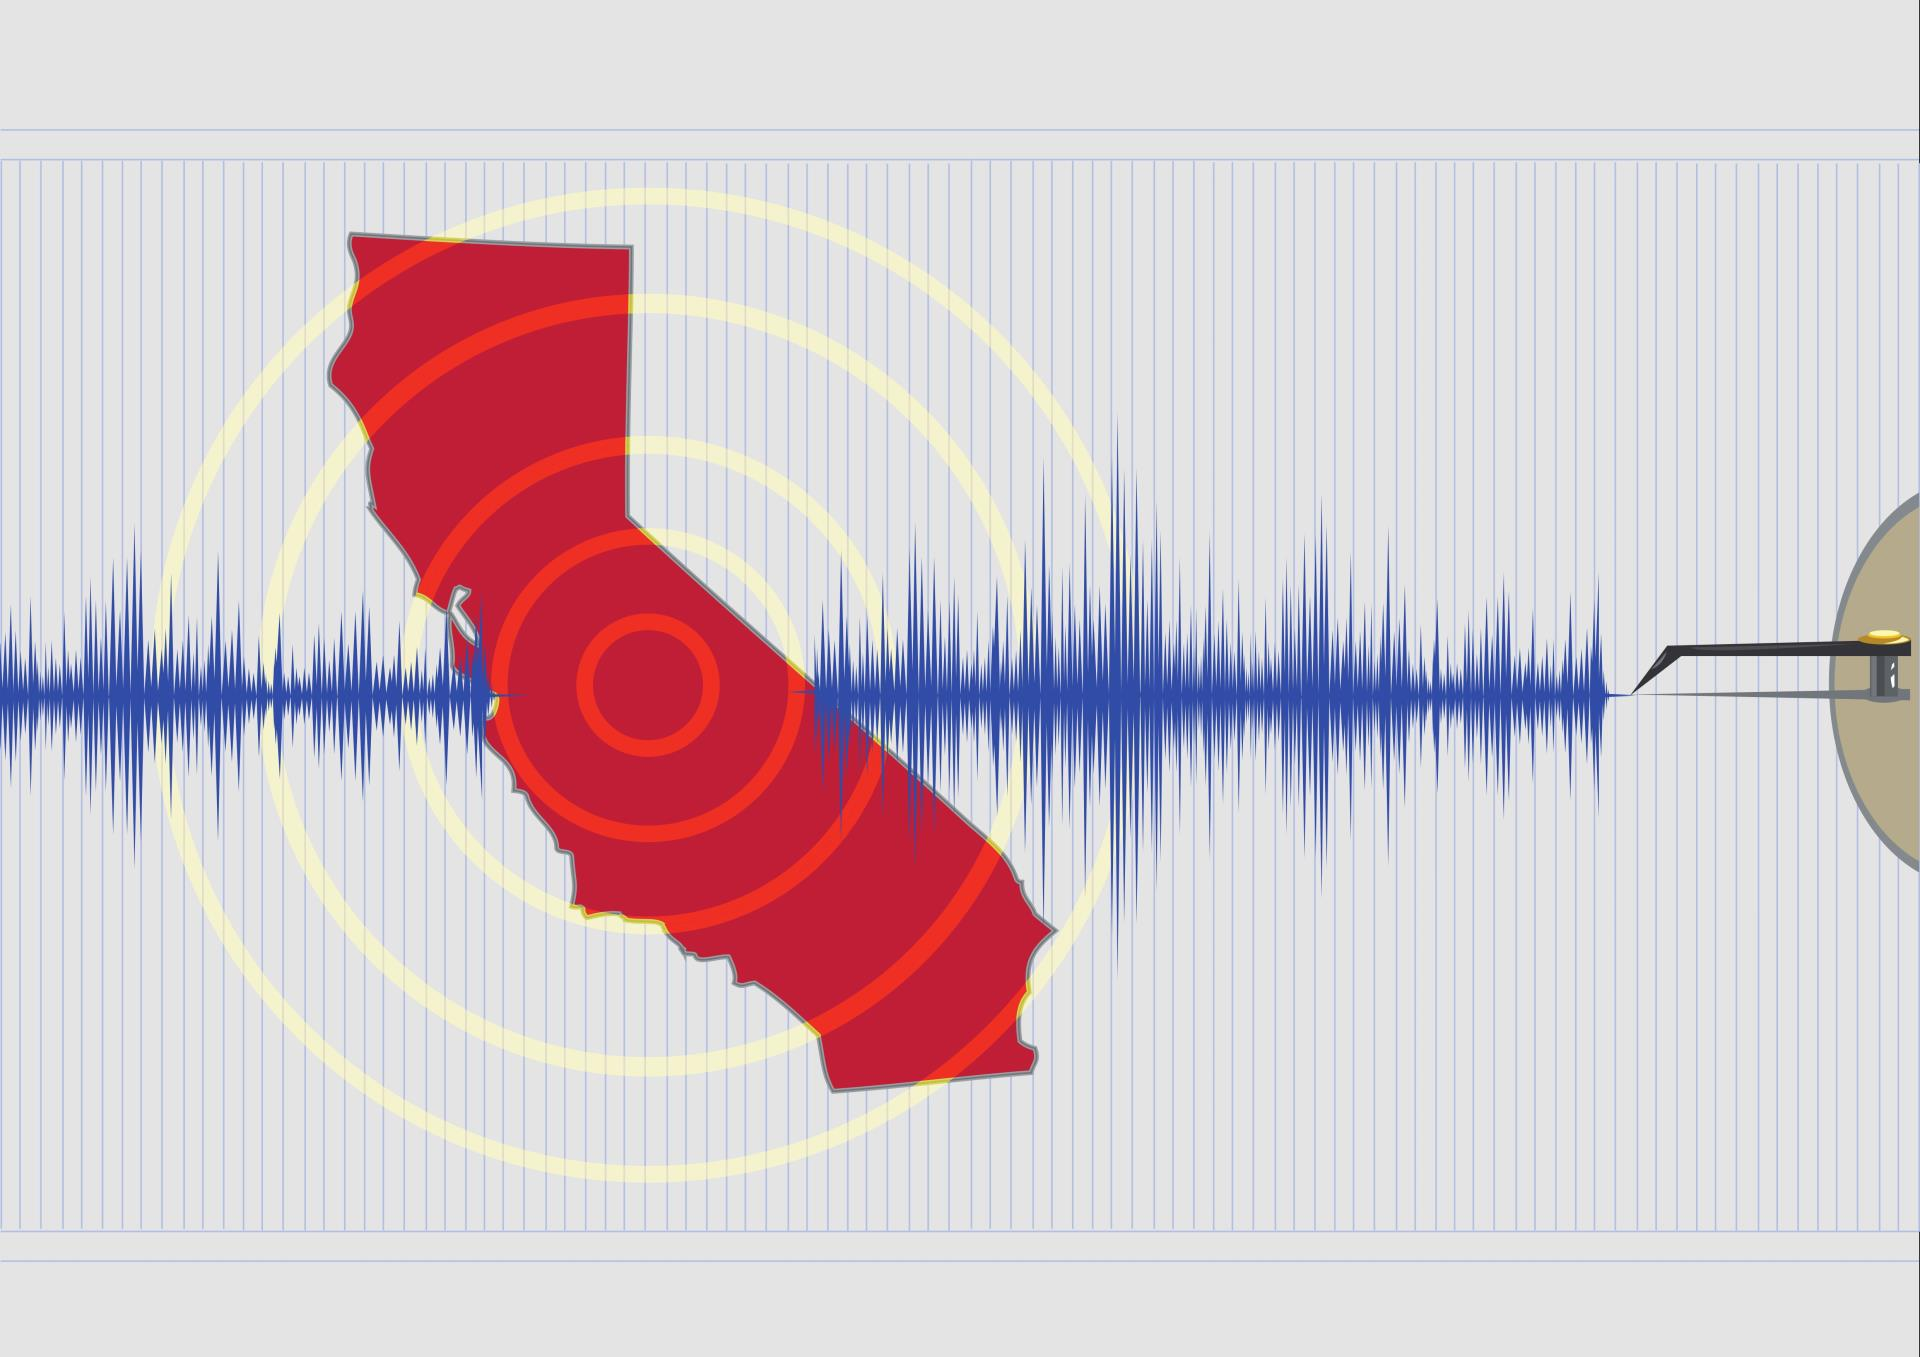 California Earthquake Photo with Seismograph